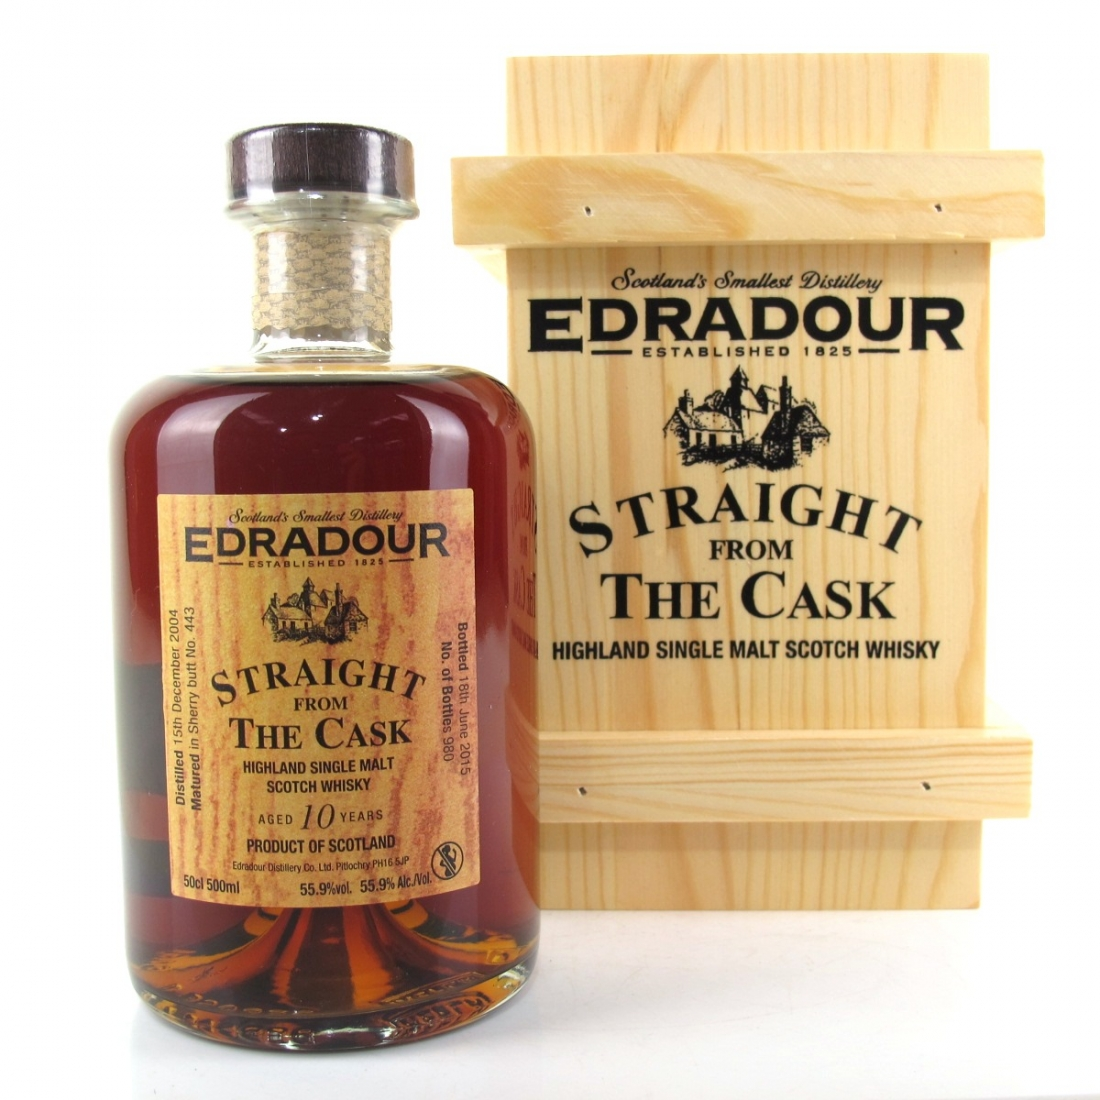 Edradour 2004 Straight from the Cask 10 Year Old / Sherry Cask